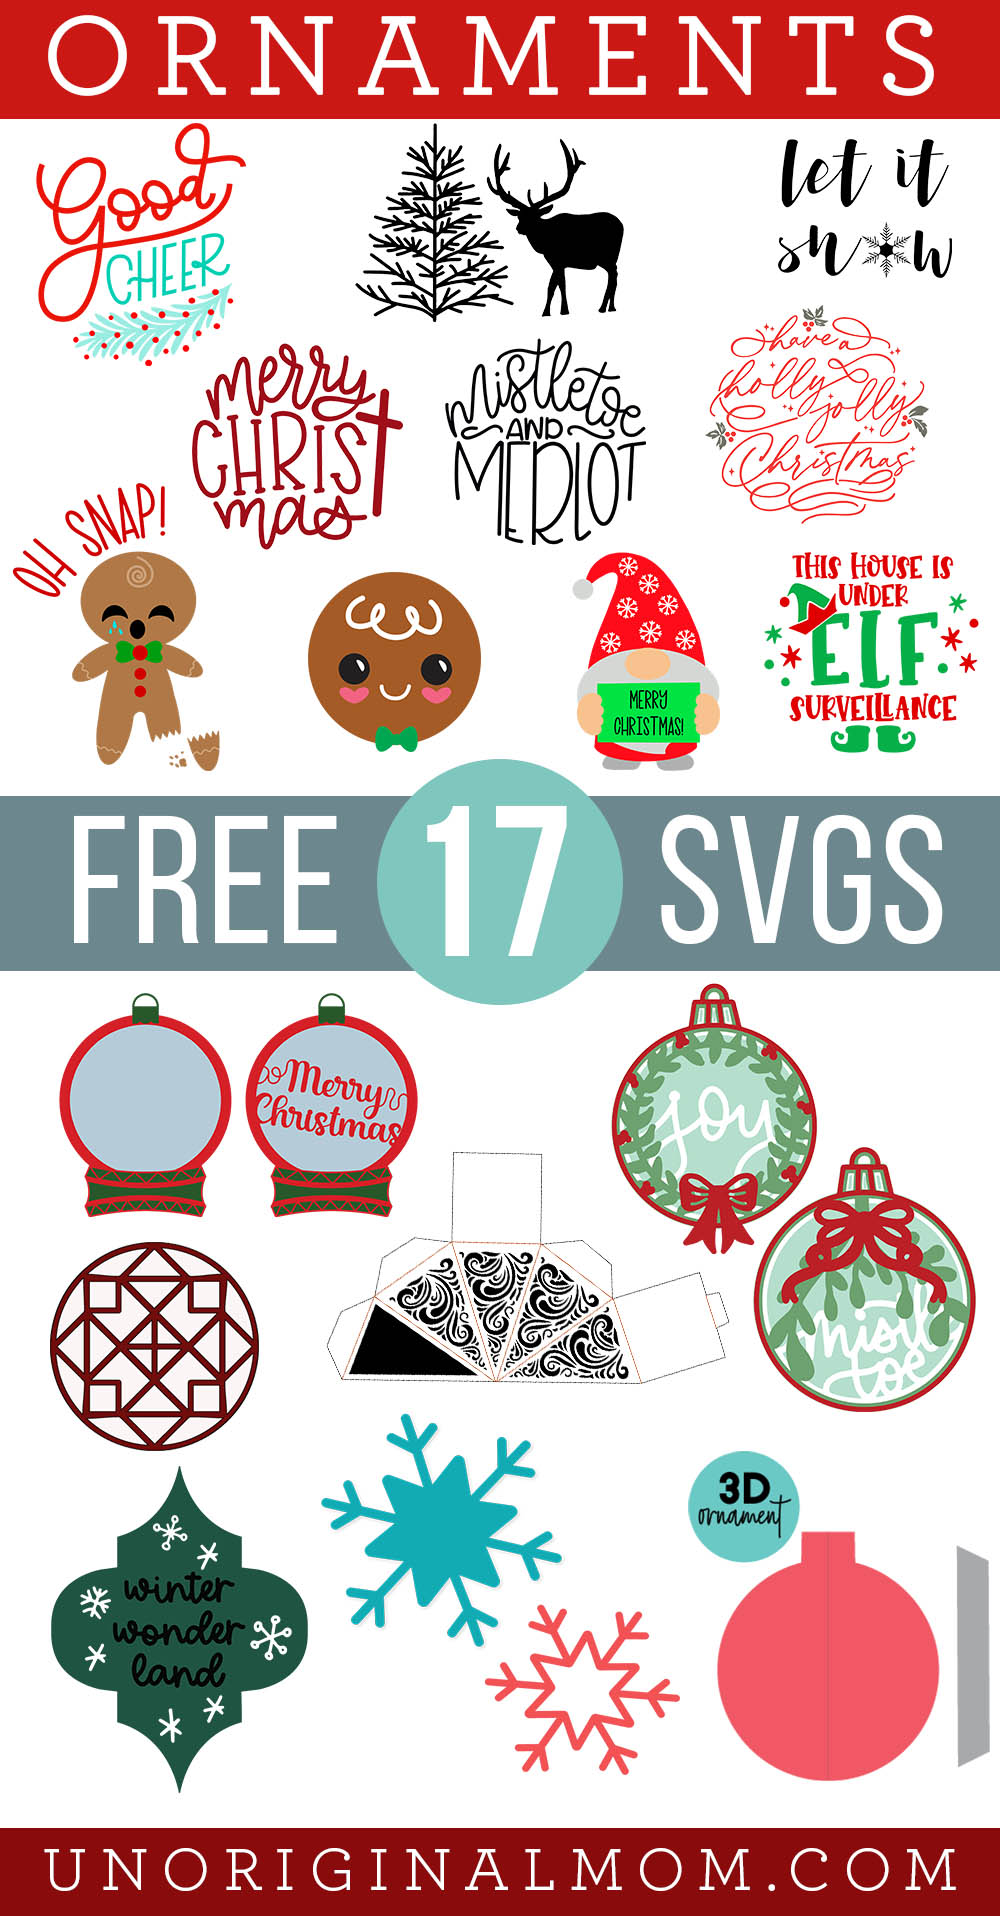 A collection of 17 free ornament SVGs for Christmas - perfect for vinyl wood slice ornaments with your Cricut or Silhouette!